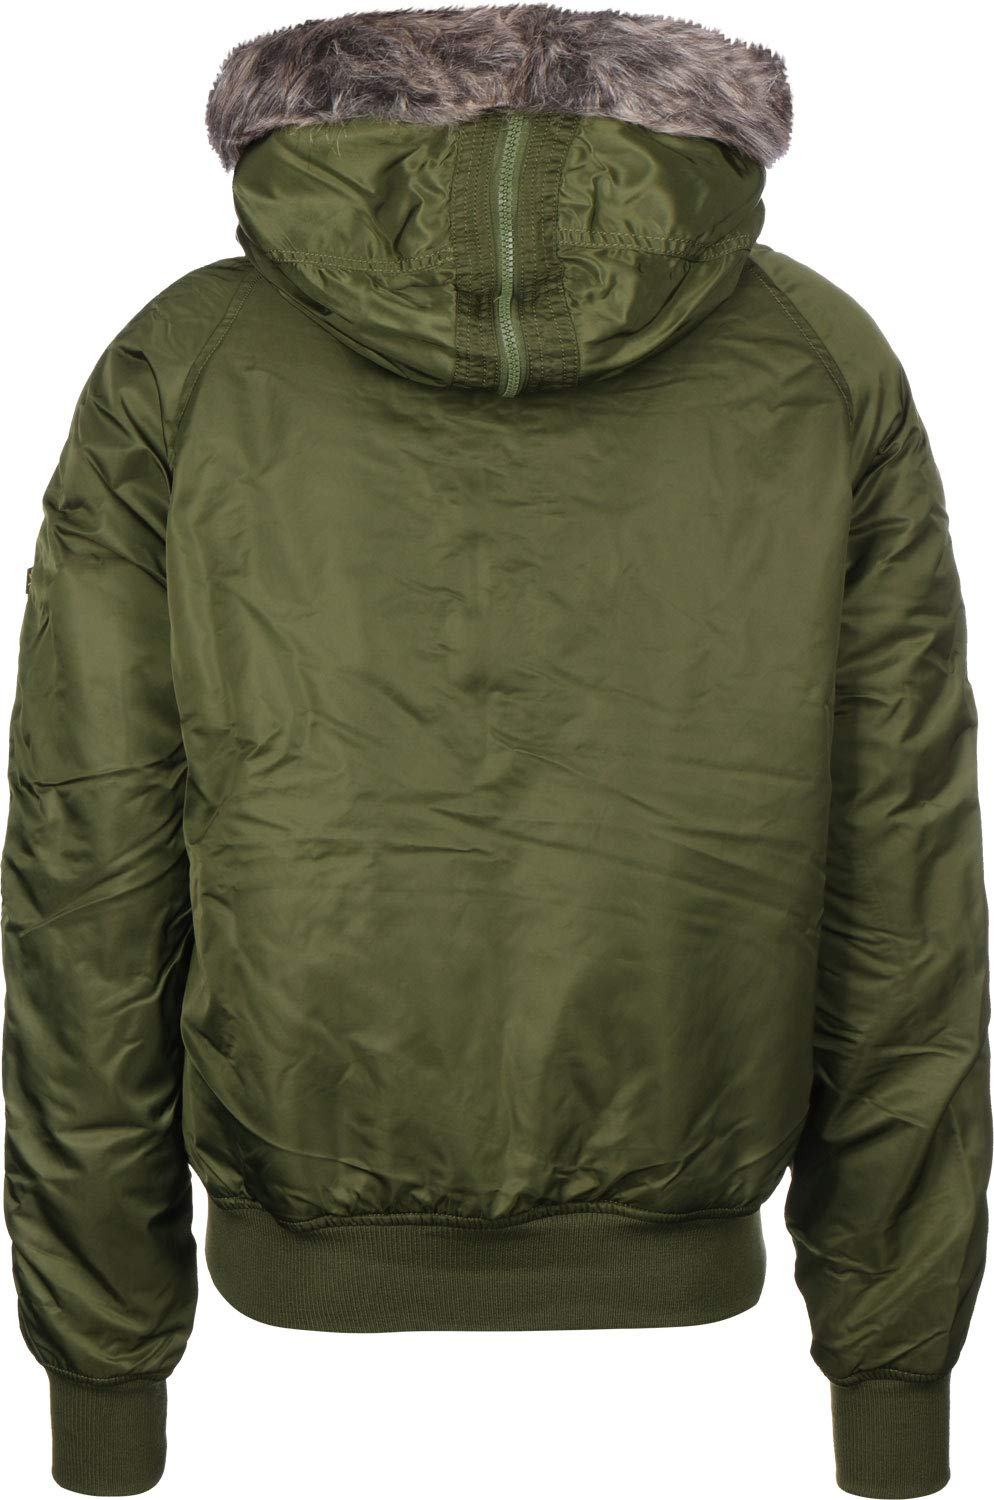 Alpha Industries Industries Industries N2B VF 59 Jacke Dunkelgrün L B07HGFCVPK Jacken In hohem Grade geschätzt und weit Grünrautes herein und heraus 7d1af3